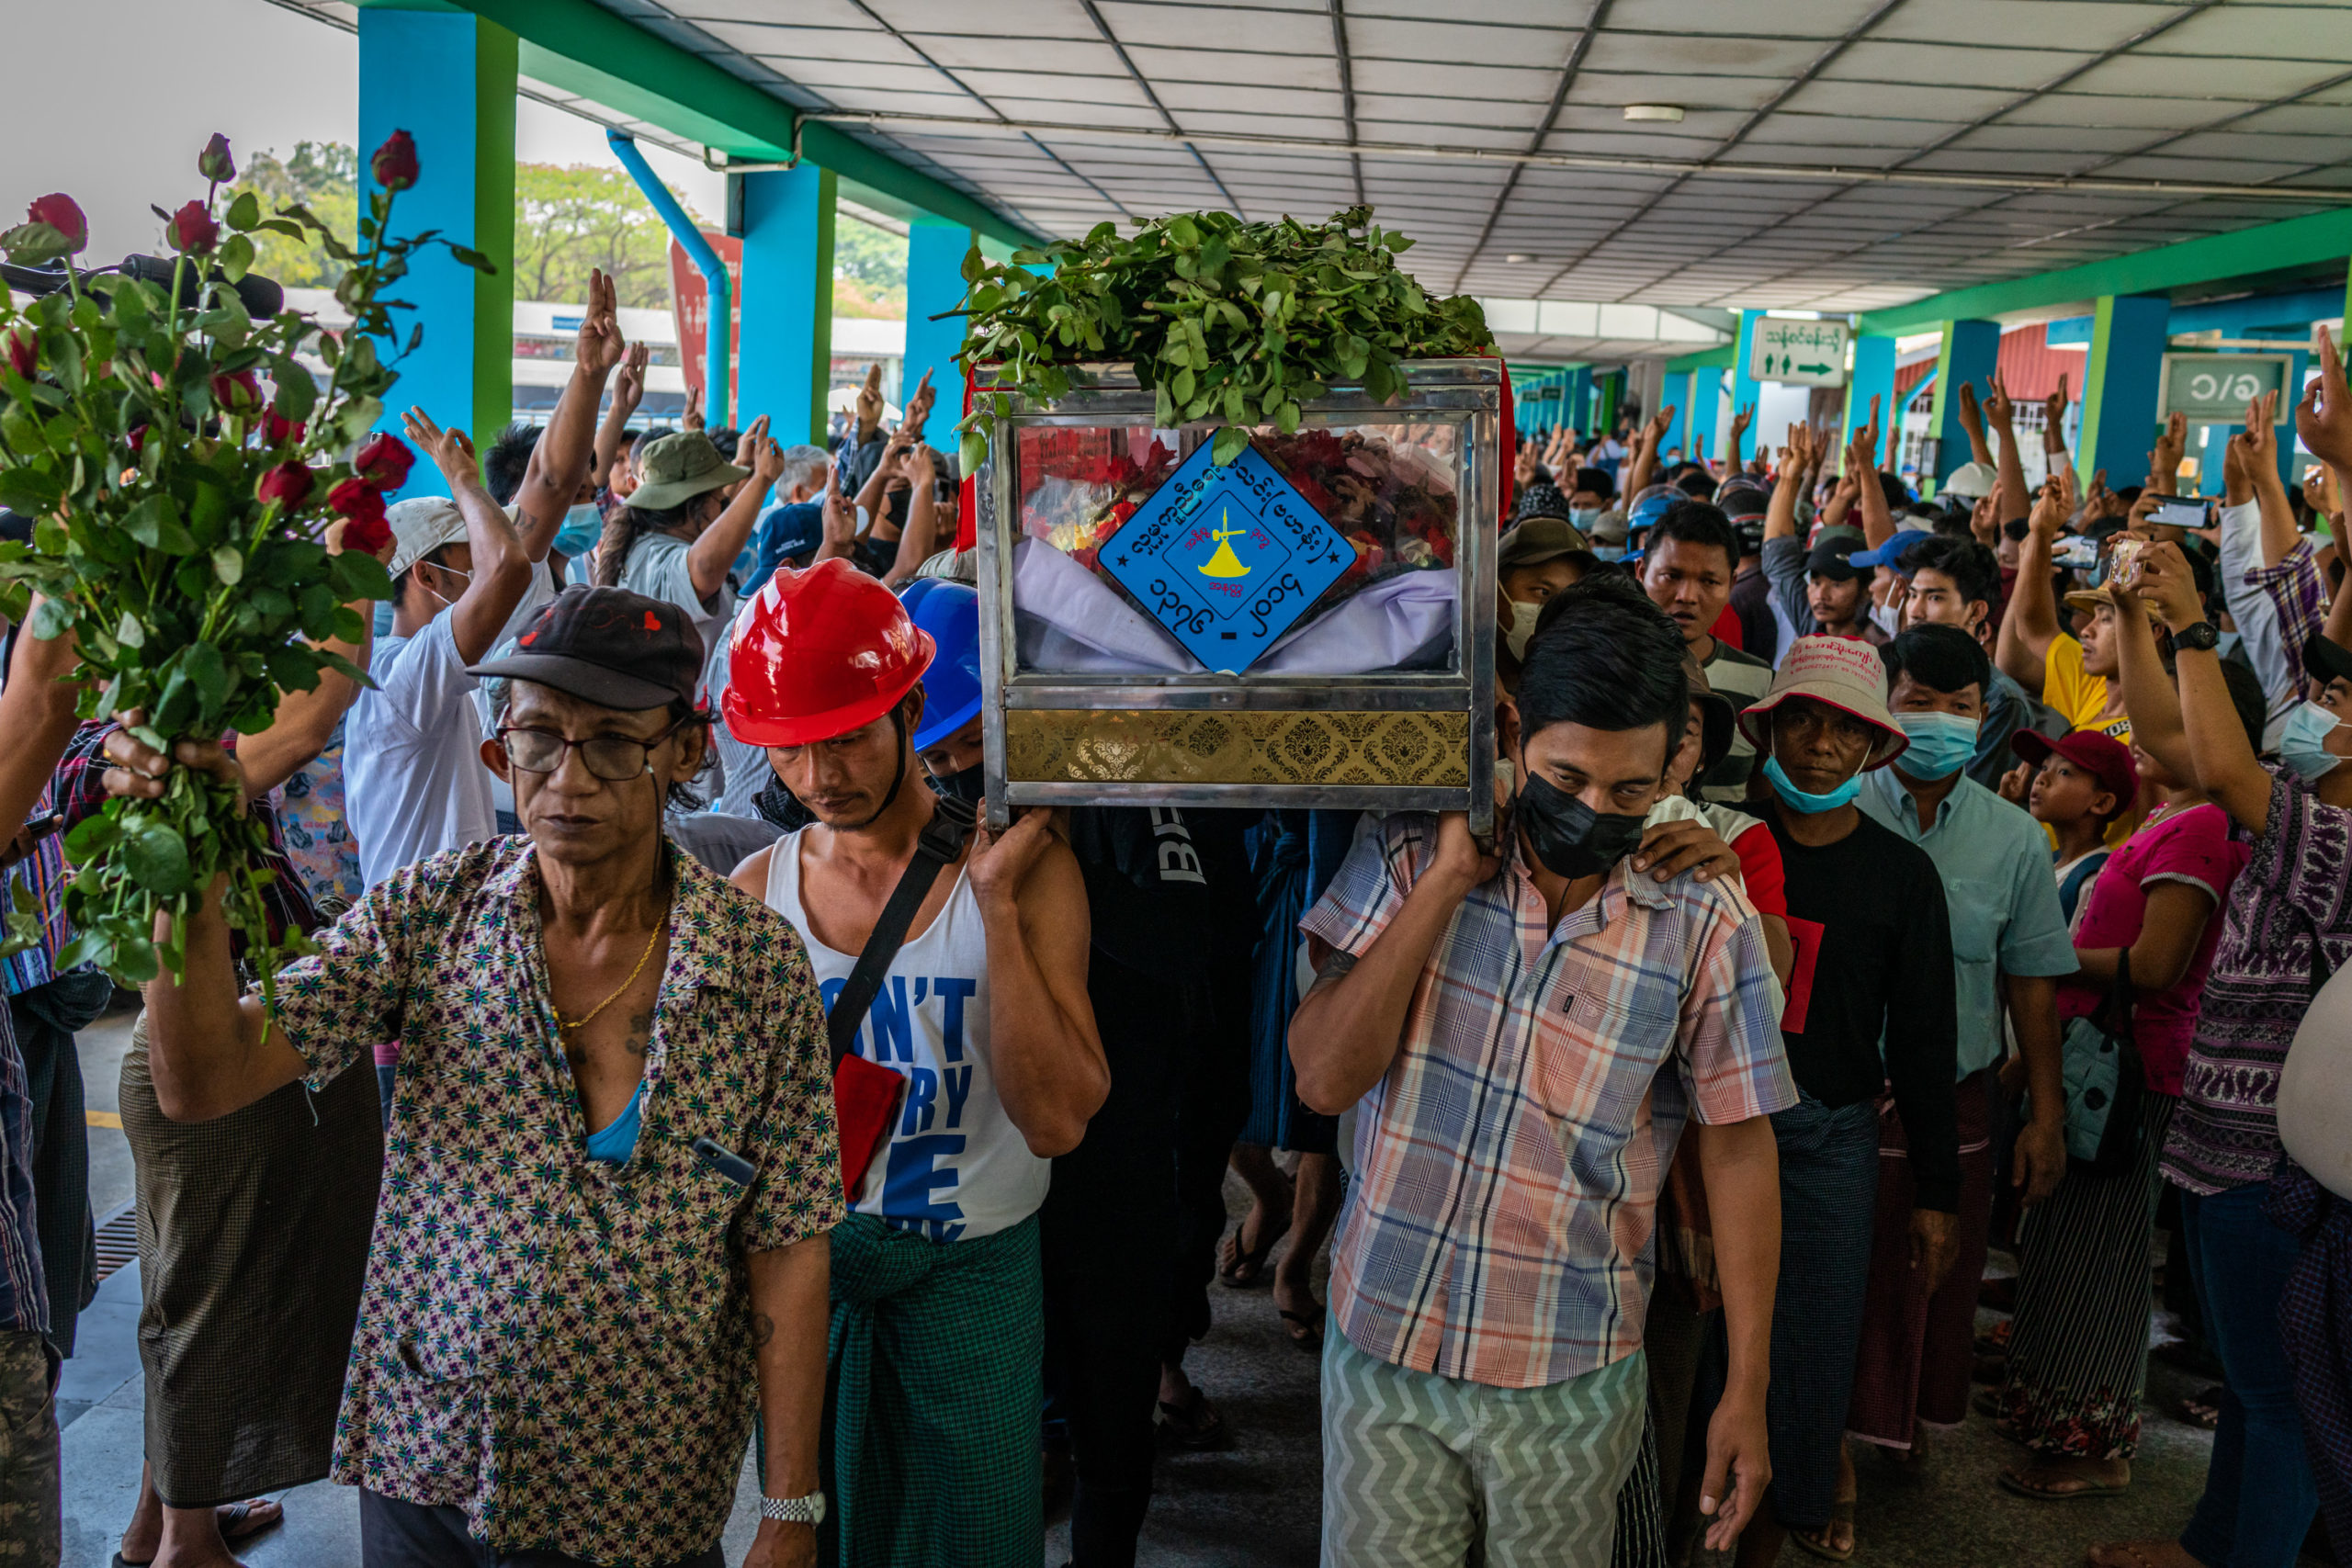 Relatives carry a coffin containing the body of Ko Phoe Chit, 22, during a funeral for protesters who were shot dead in clashes with military and police on March 05, 2021 at the Yay Way cemetery in Yangon, Myanmar. (Photo by Stringer/Getty Images)